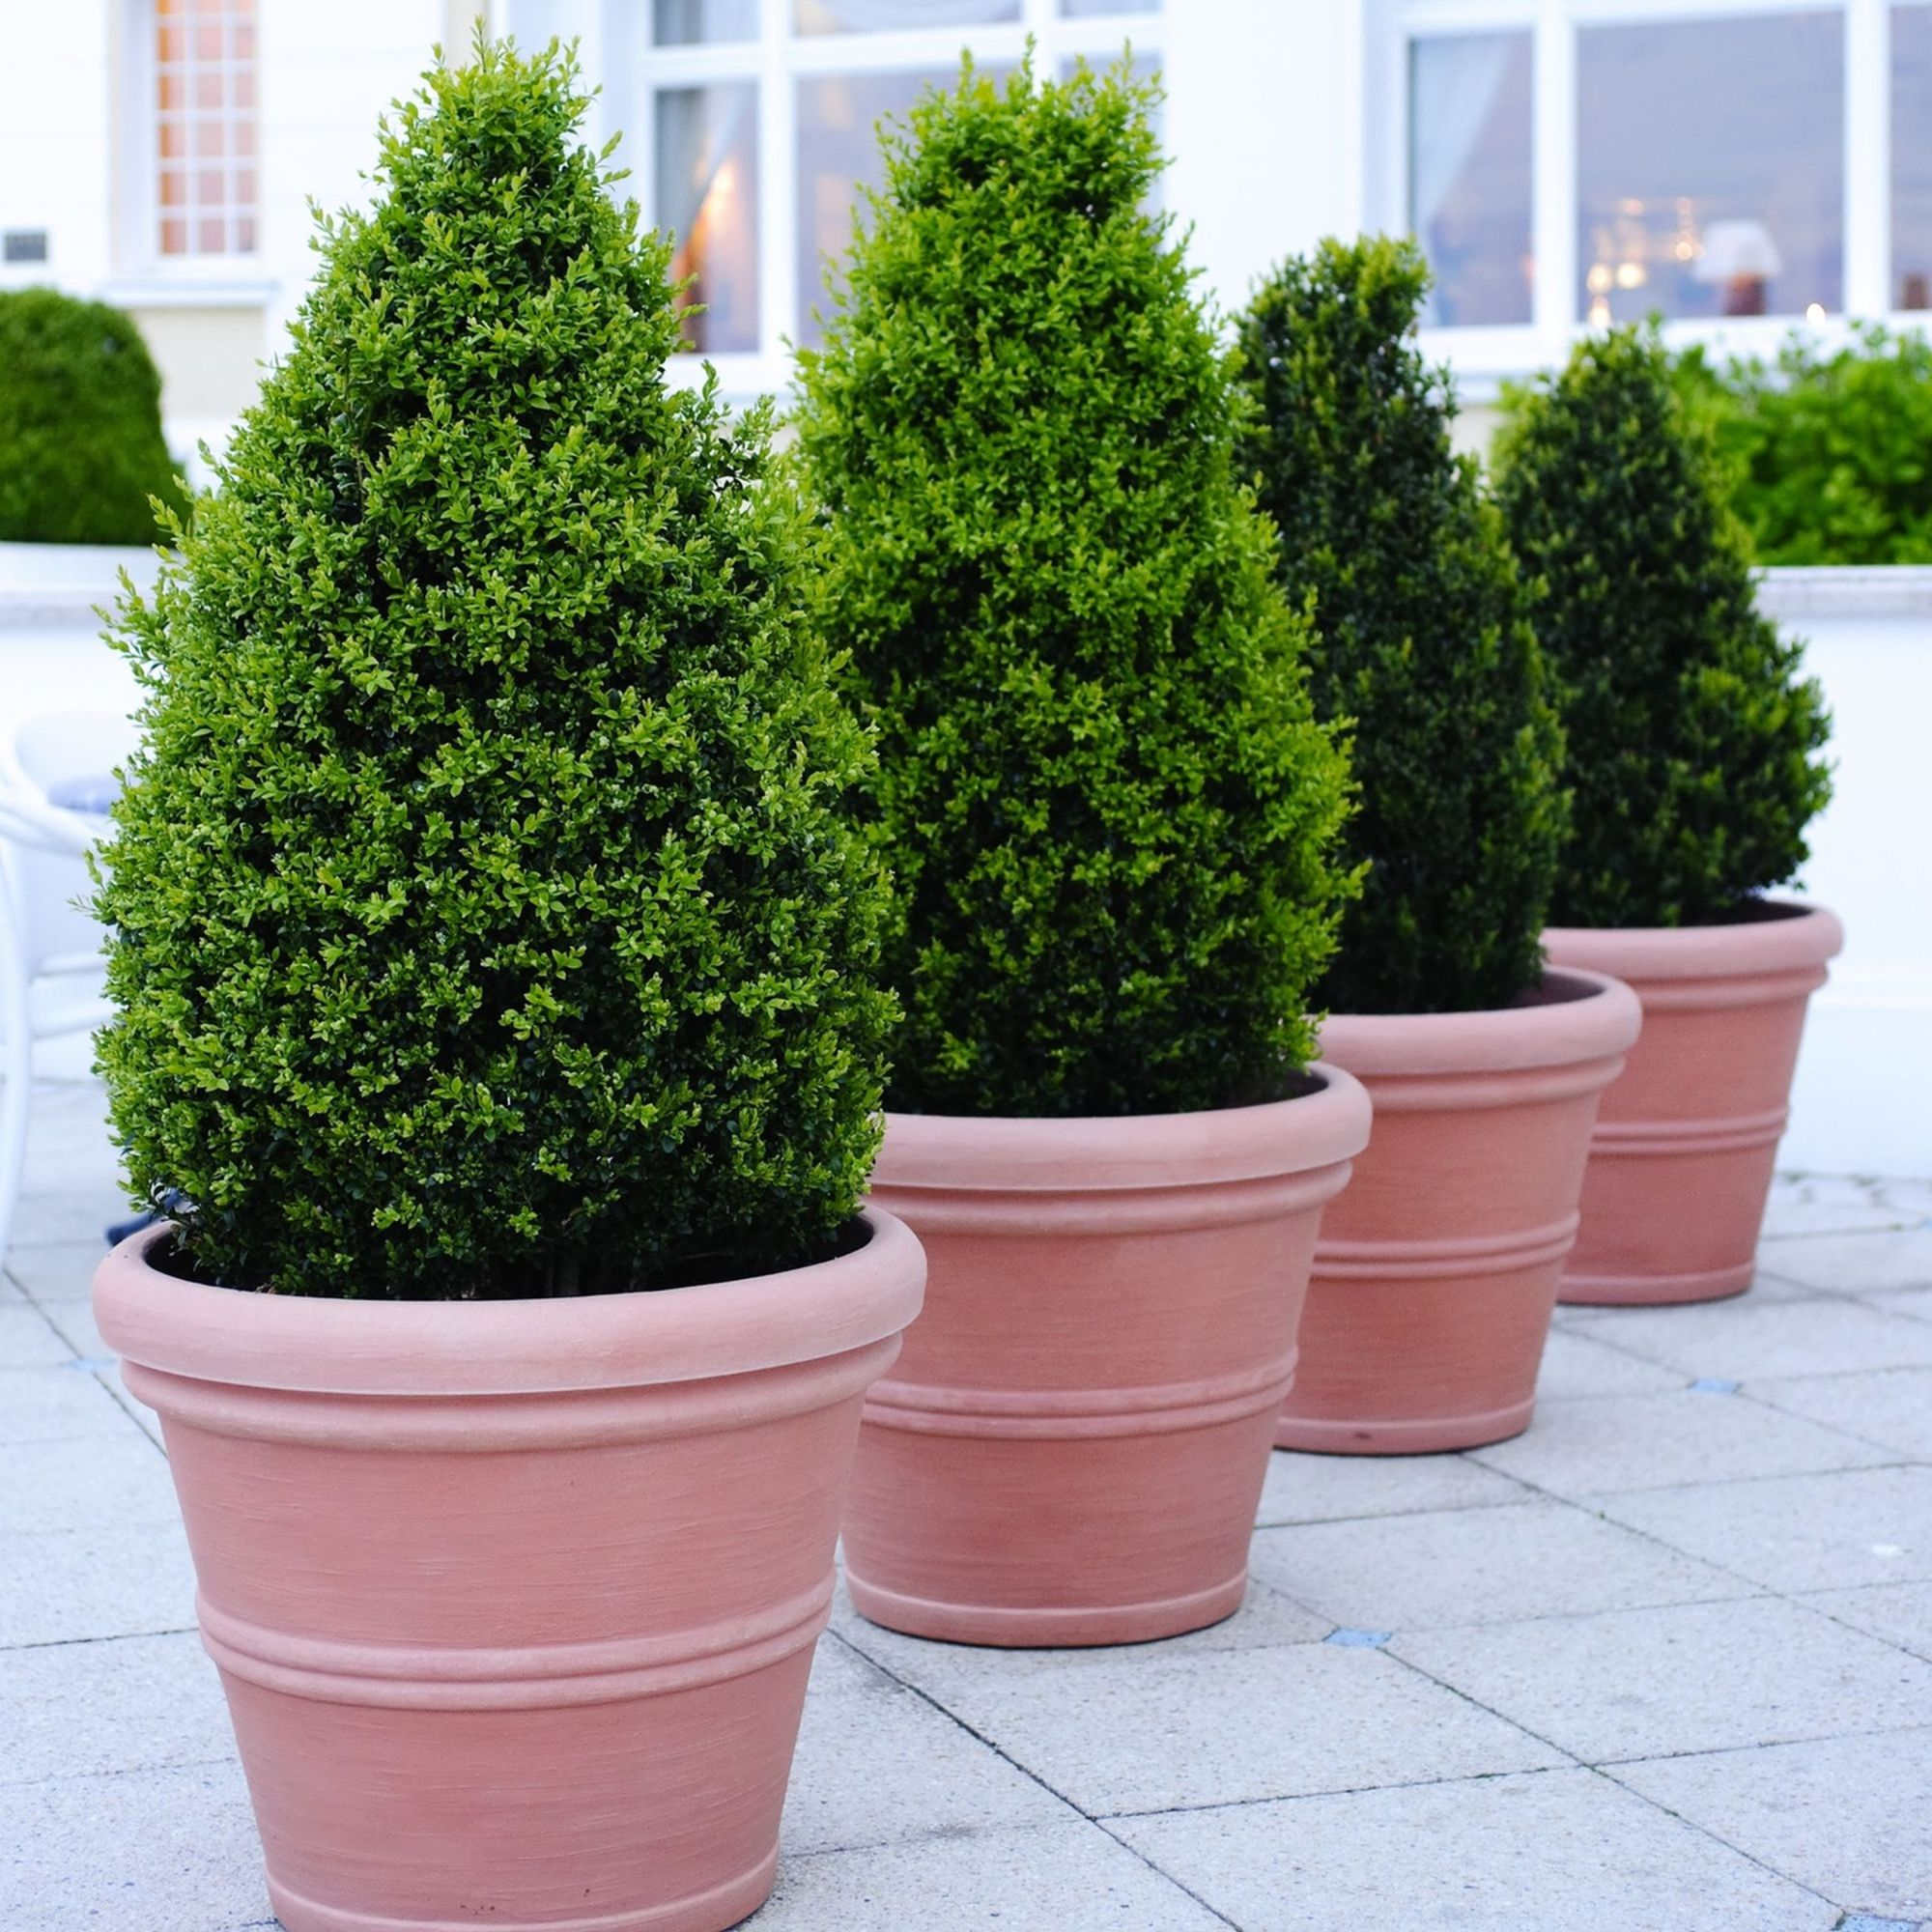 Formal conifers in pots (Thinkstock/PA)